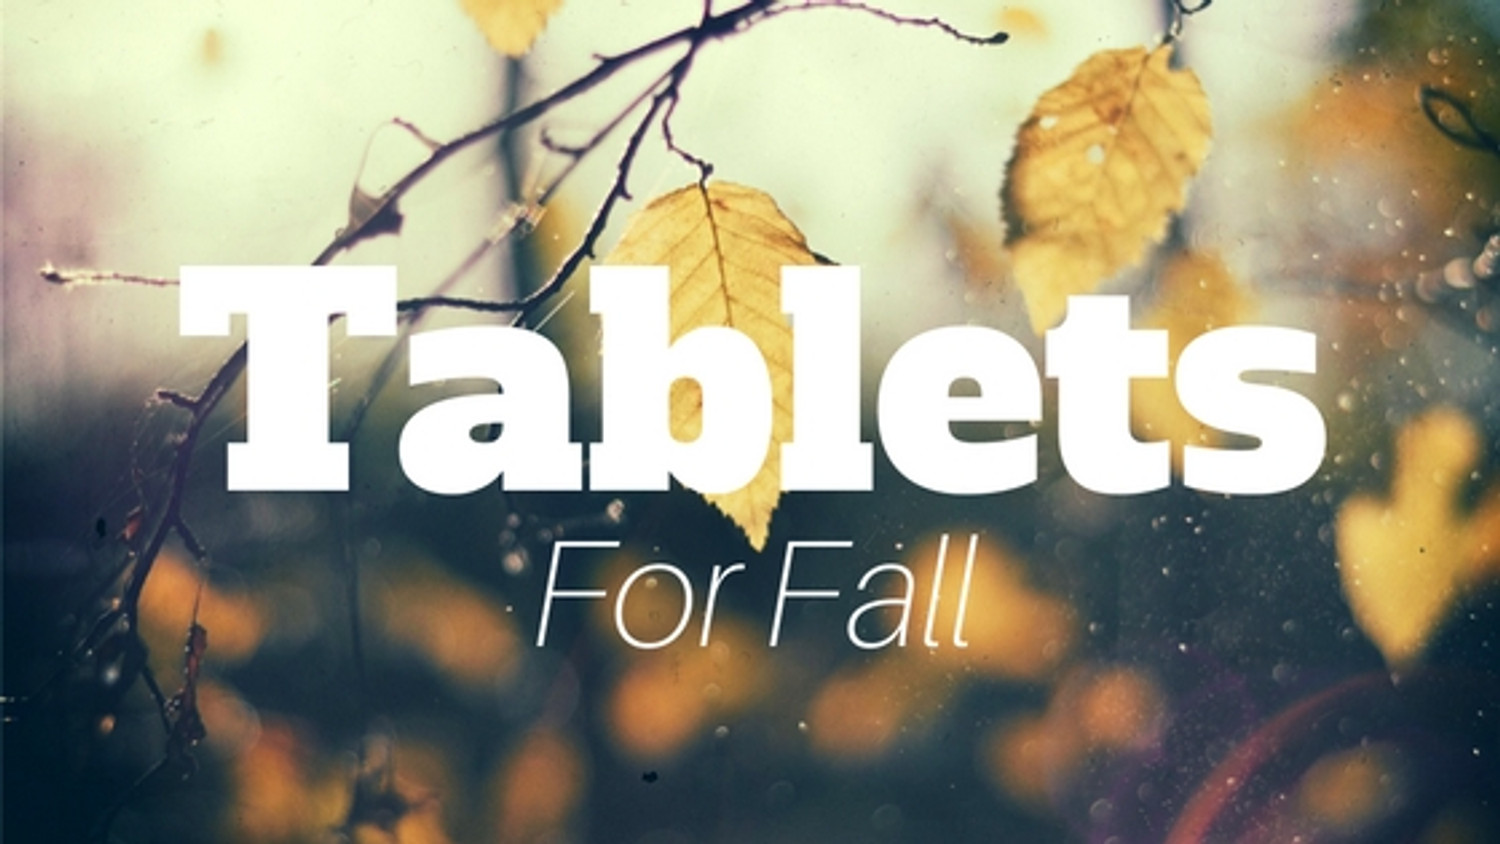 Top Tablets for Fall 2016